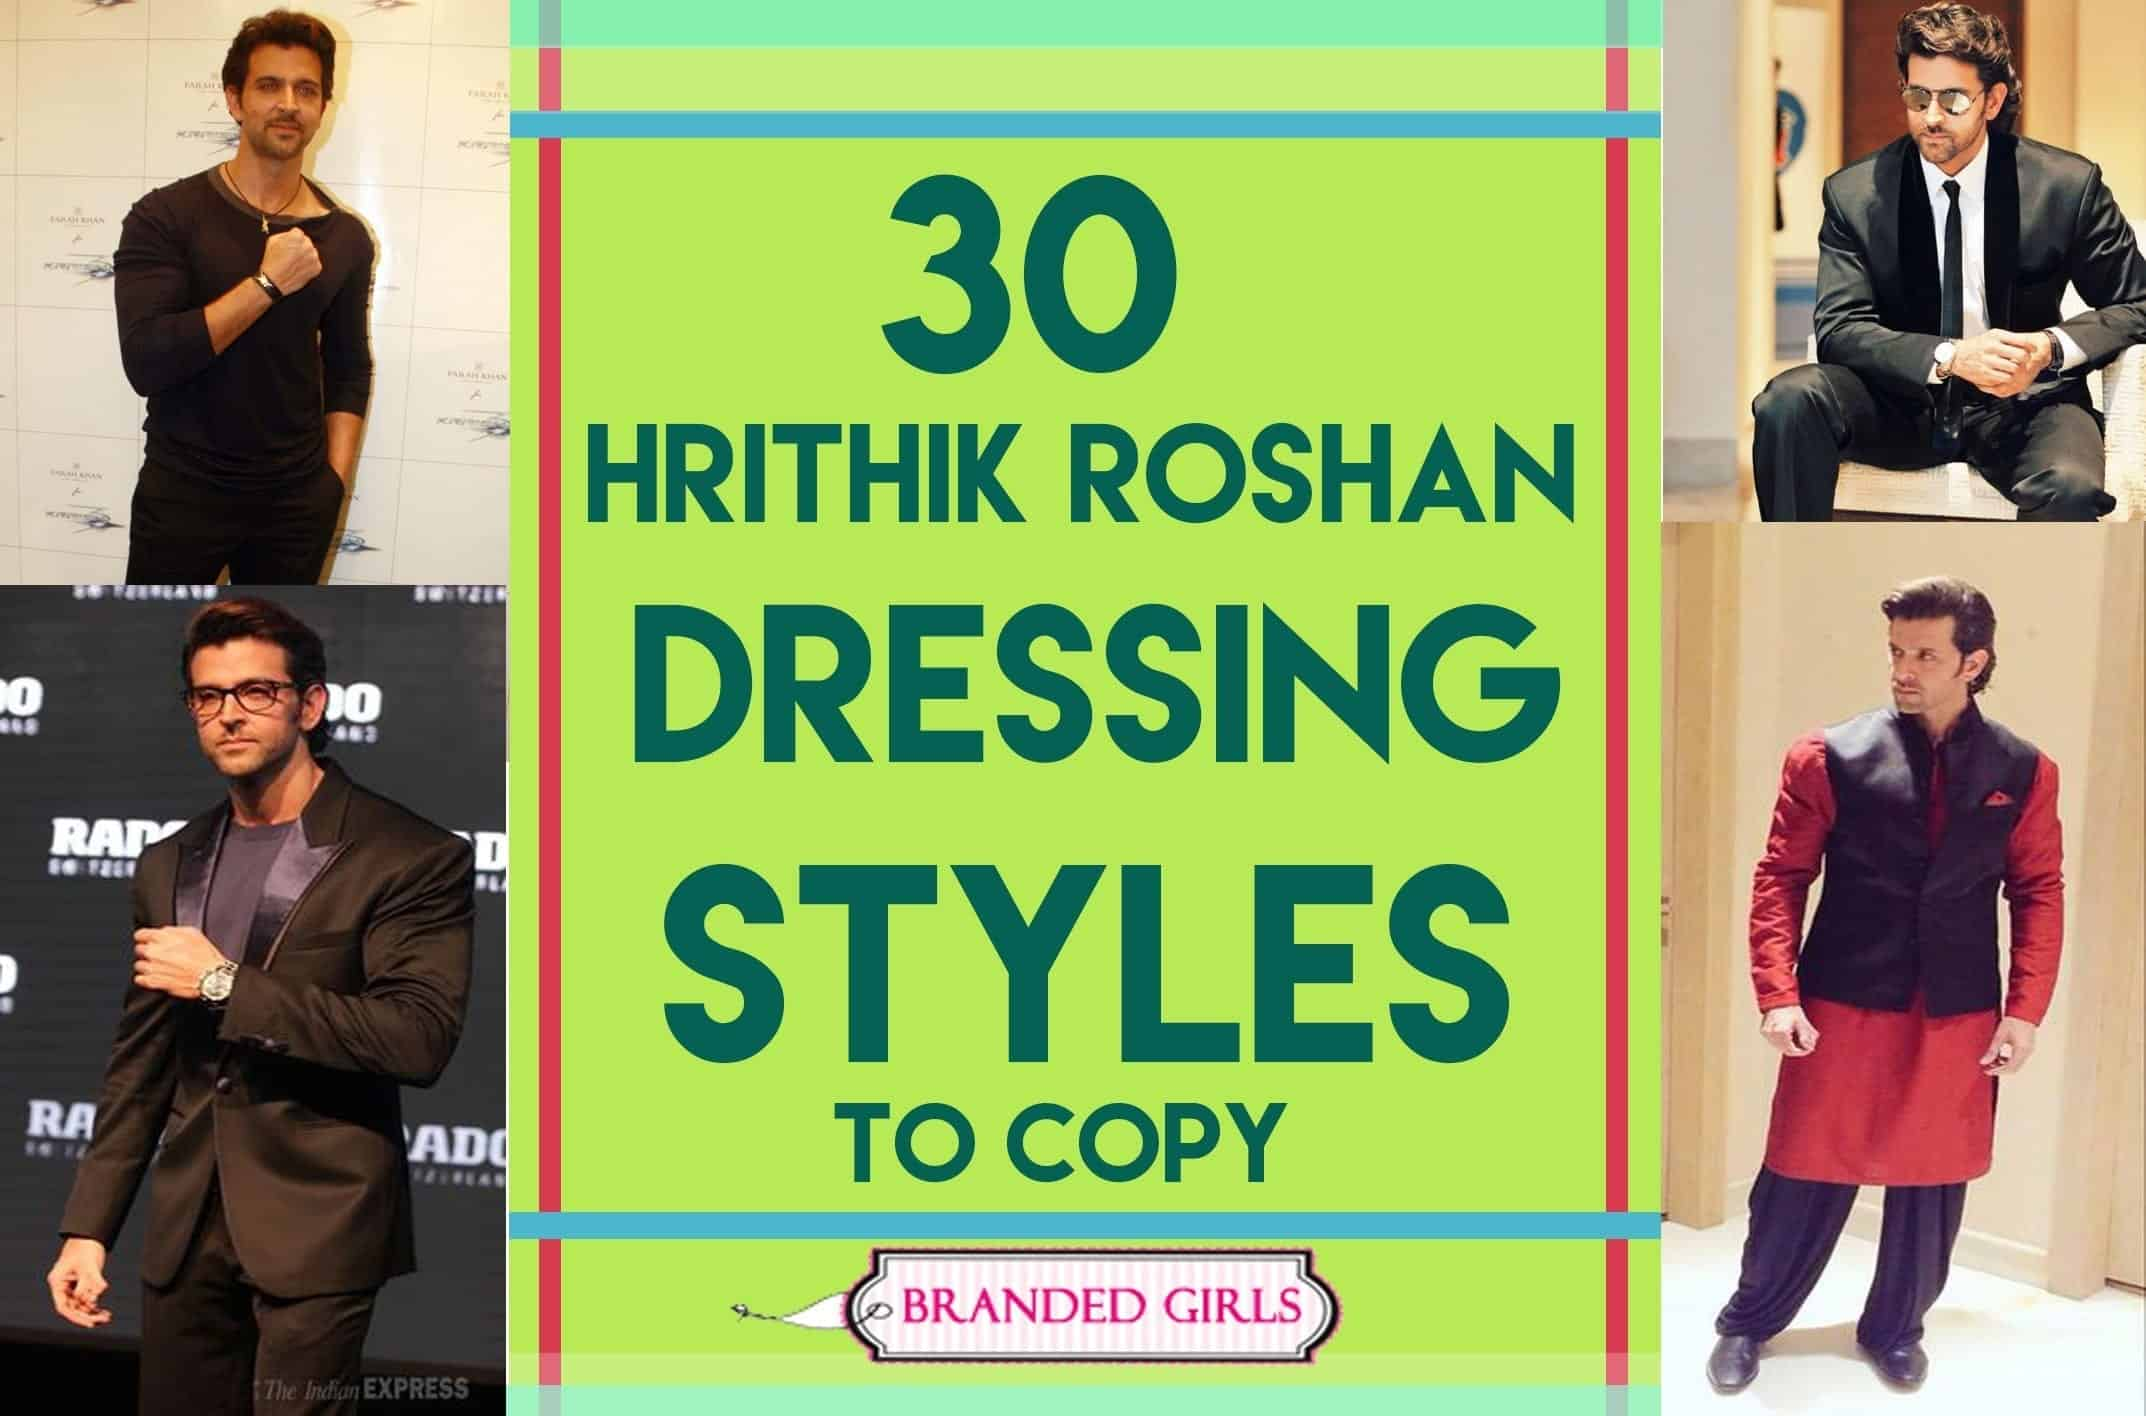 30 dressing styles od hrithik roshan to copy